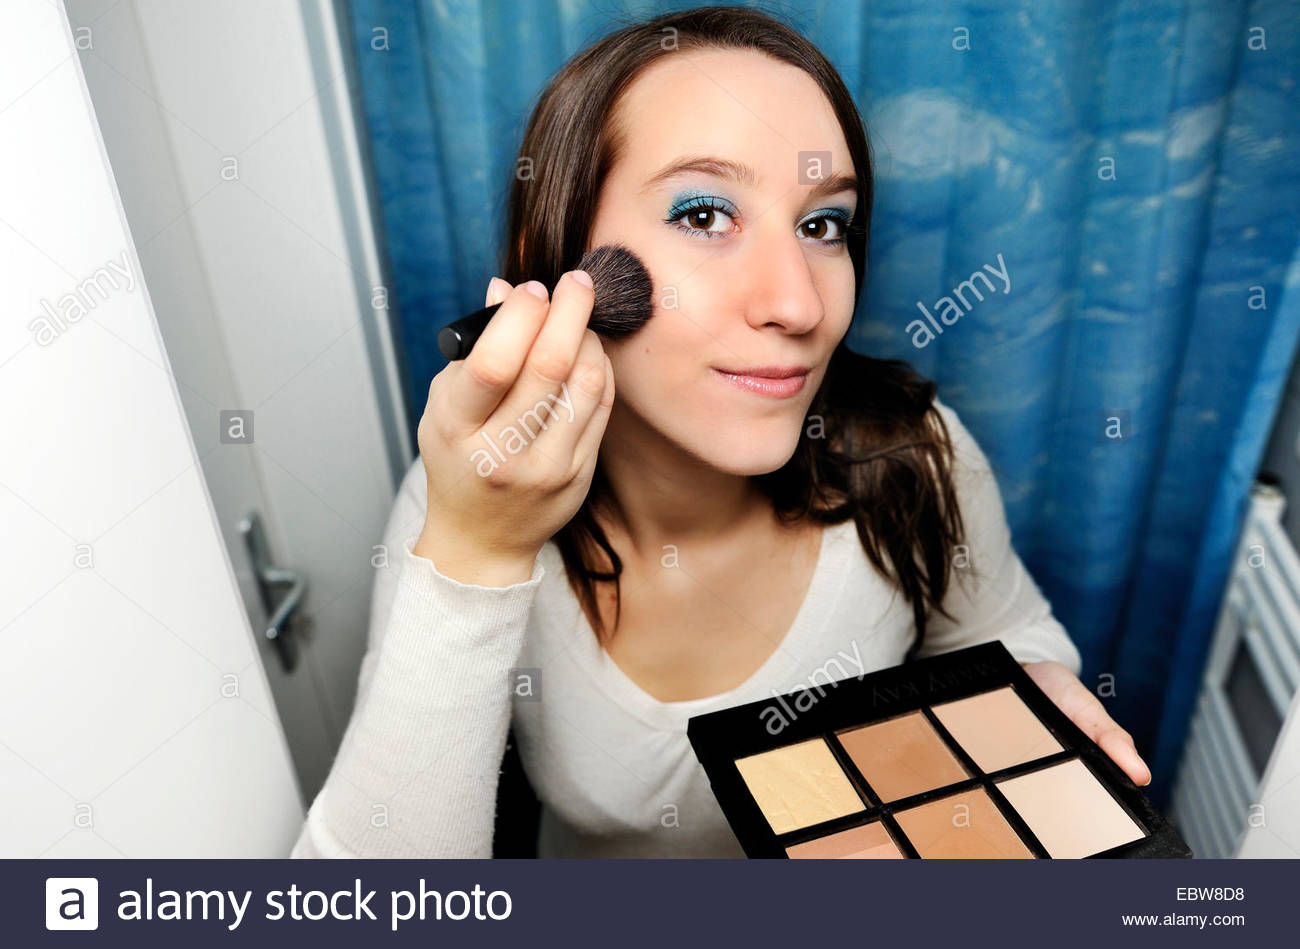 young woman putting on makeup Stock Photo